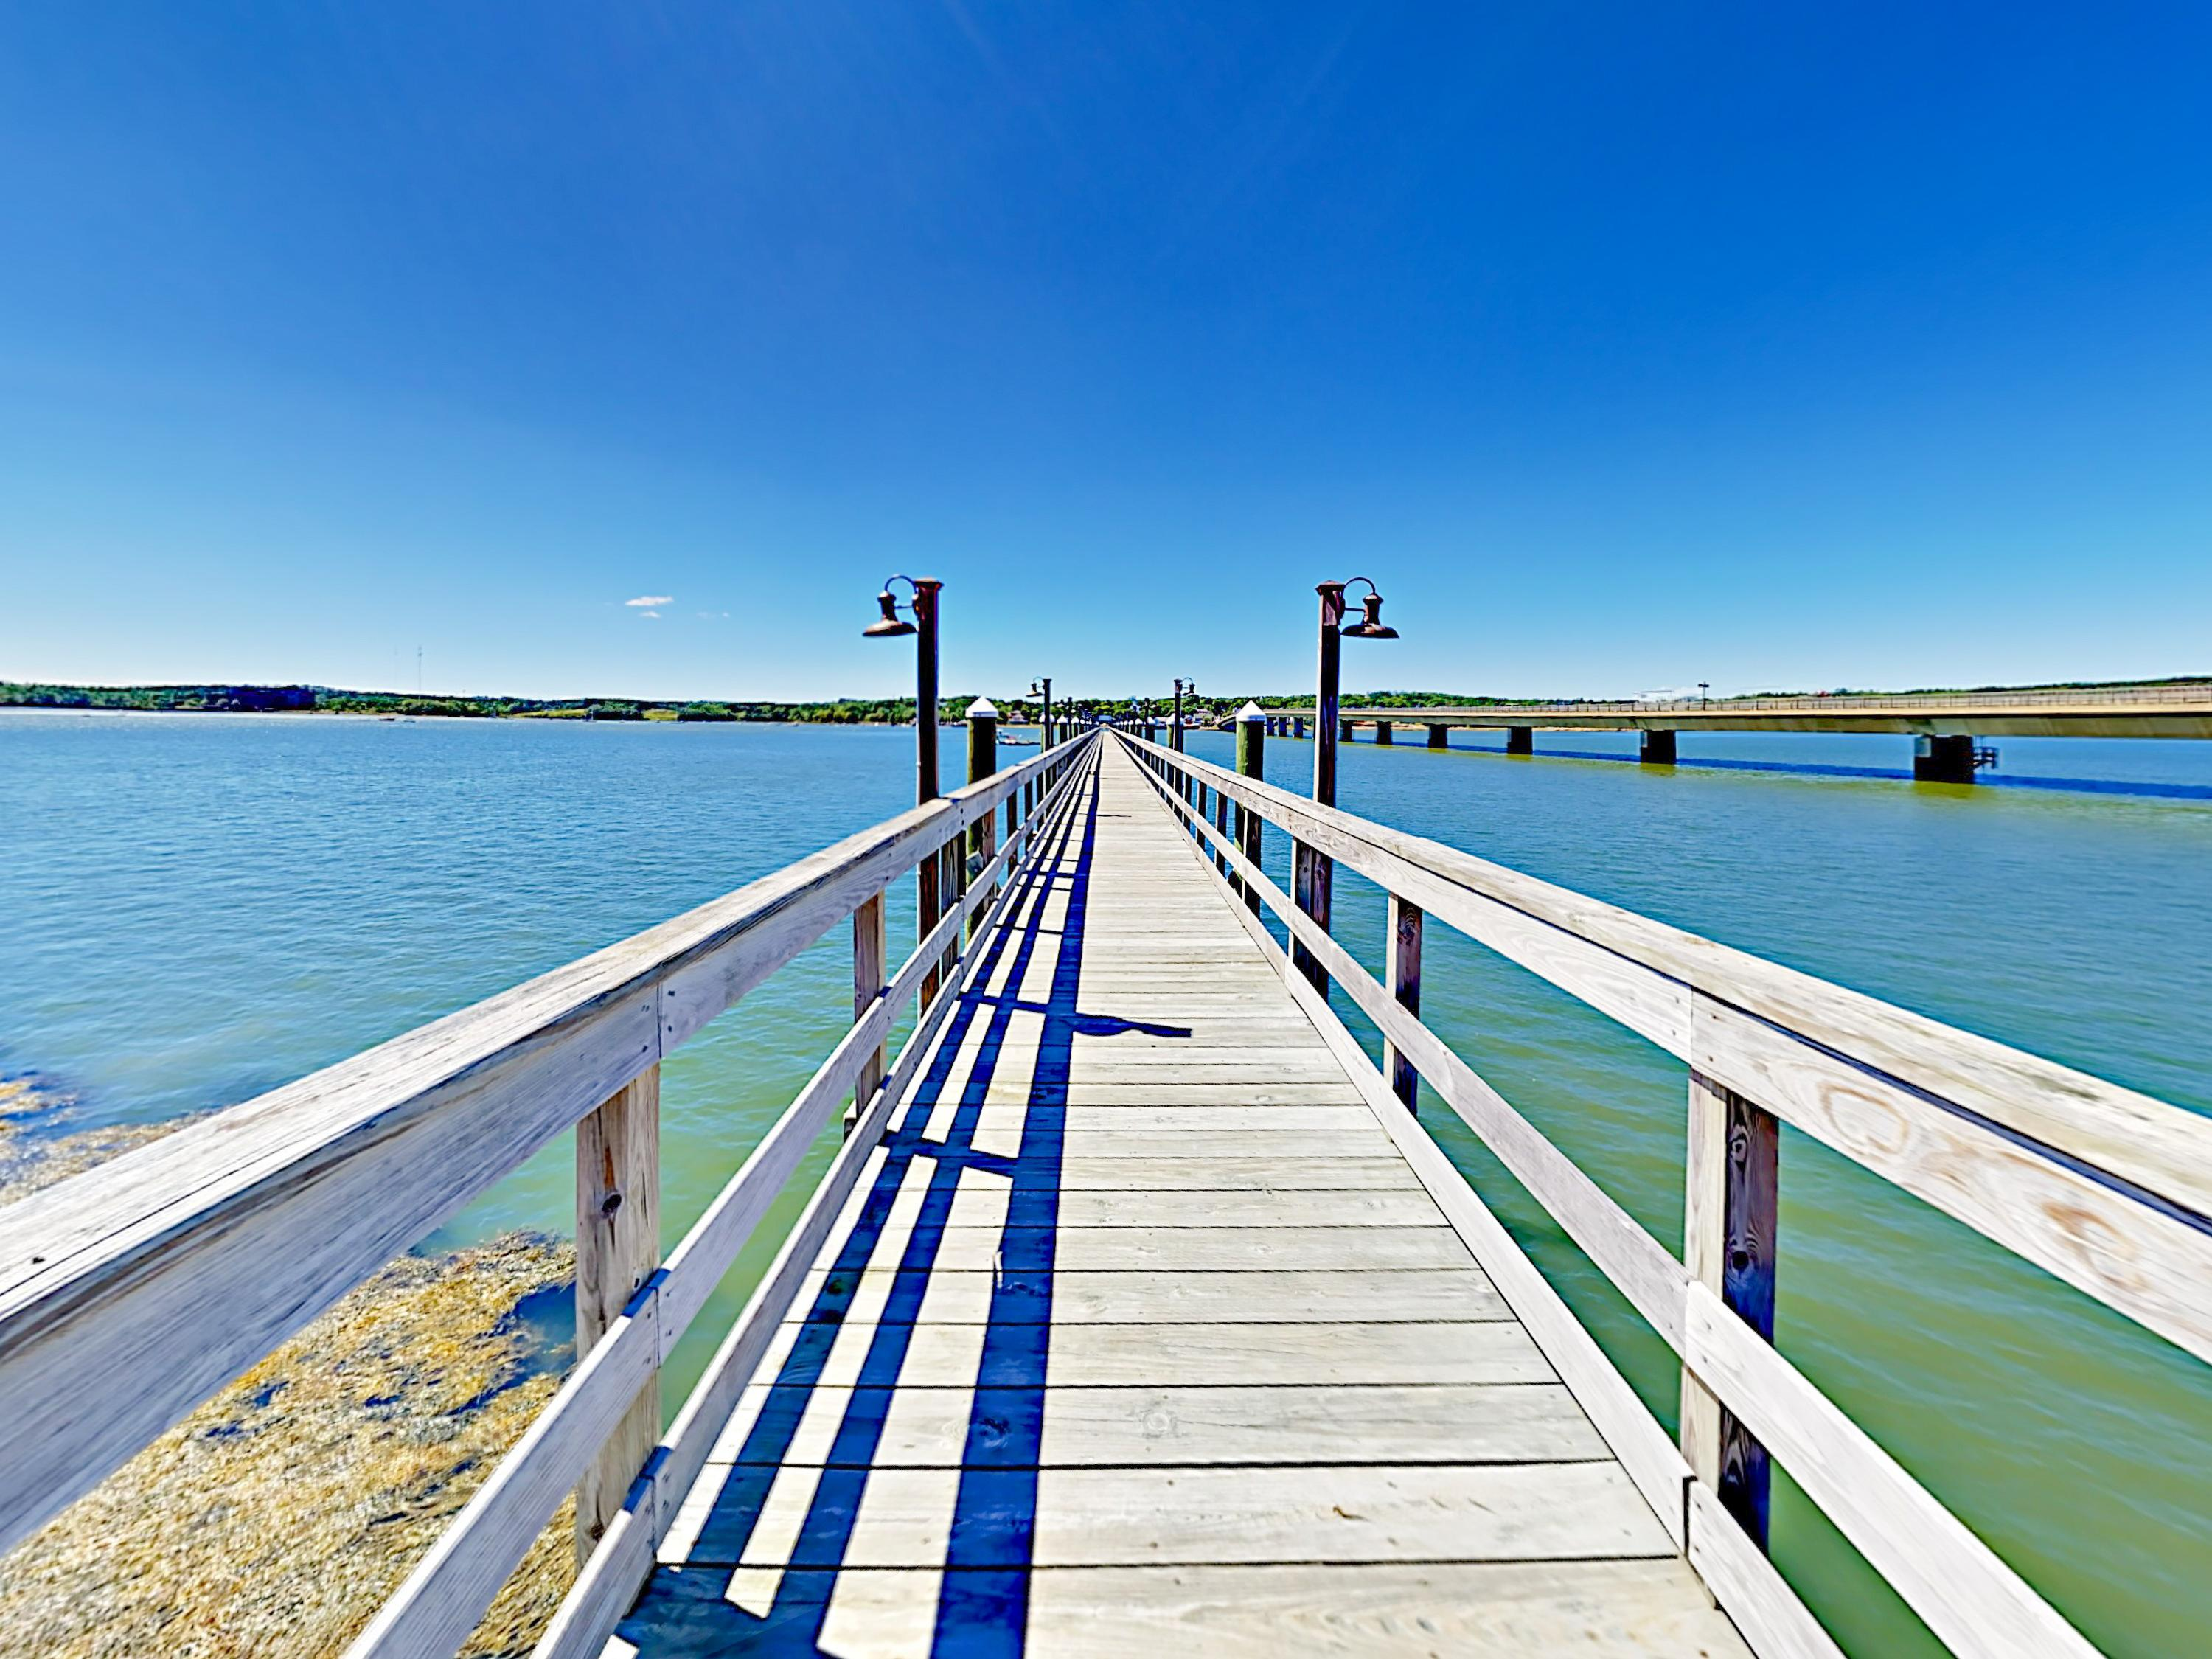 Enjoy a stroll on the dock over Sheepscot River.